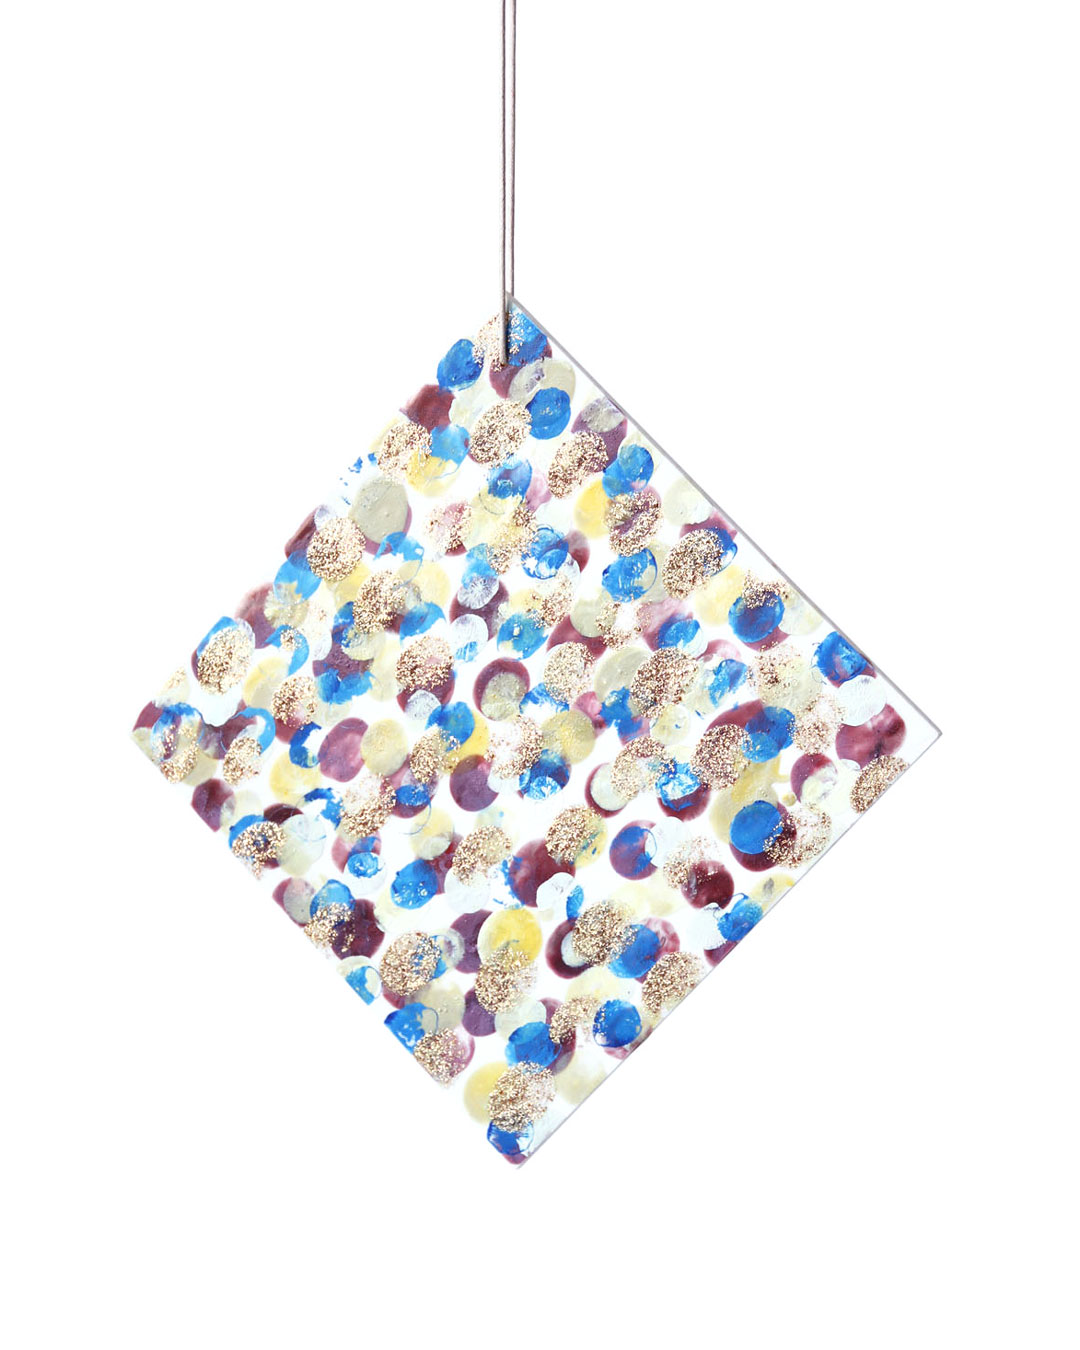 Julia Walter, Camouflage, 2014, pendant; Galalith, paint, cotton string, 200 x 200 x 5 mm, € 1700